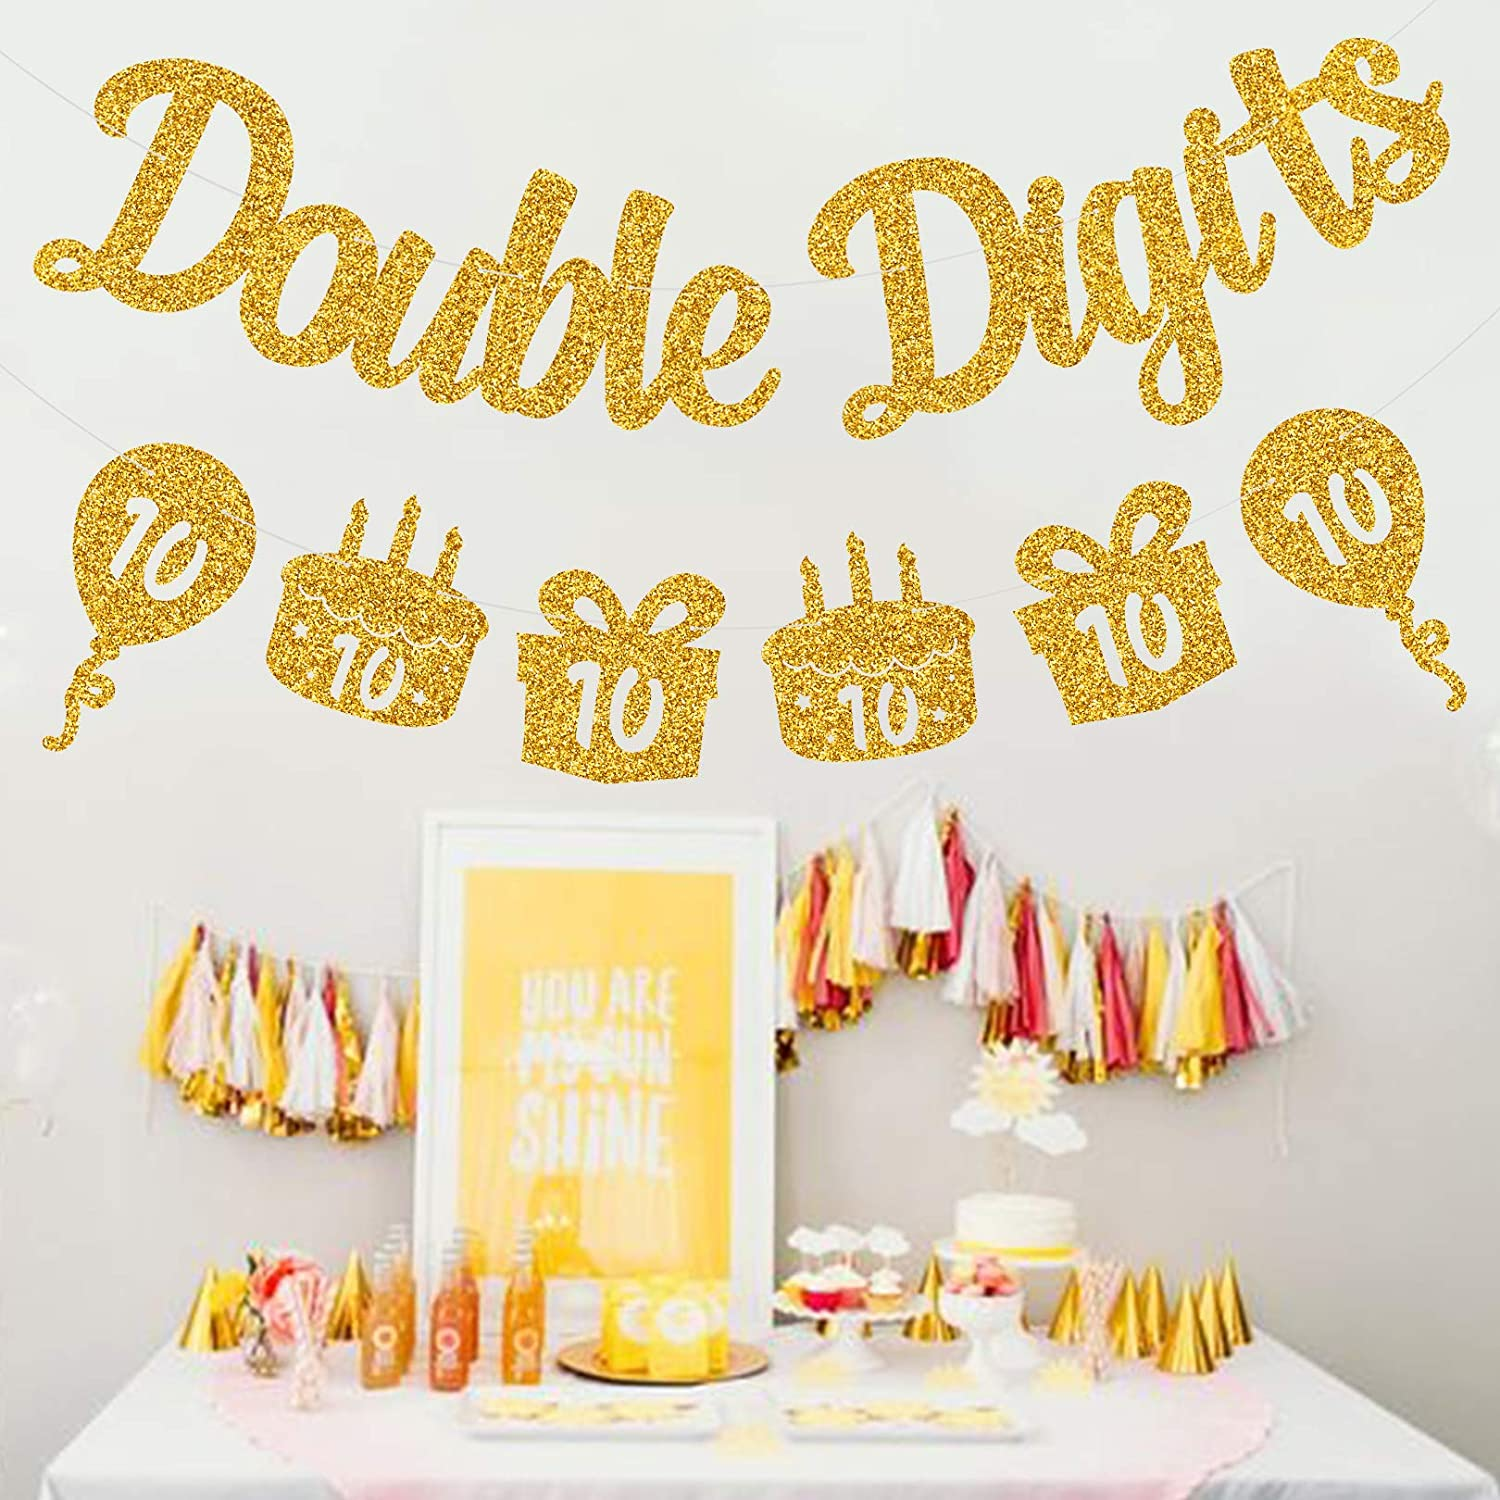 Happy 10th Birthday Decorations 10 Year Birthday Decorations for Kids 10th Birthday Decors 10th Anniversary Party Supplies MAGBEA Double Digits 10th Birthday Banner Double-sided and Golden Glitter